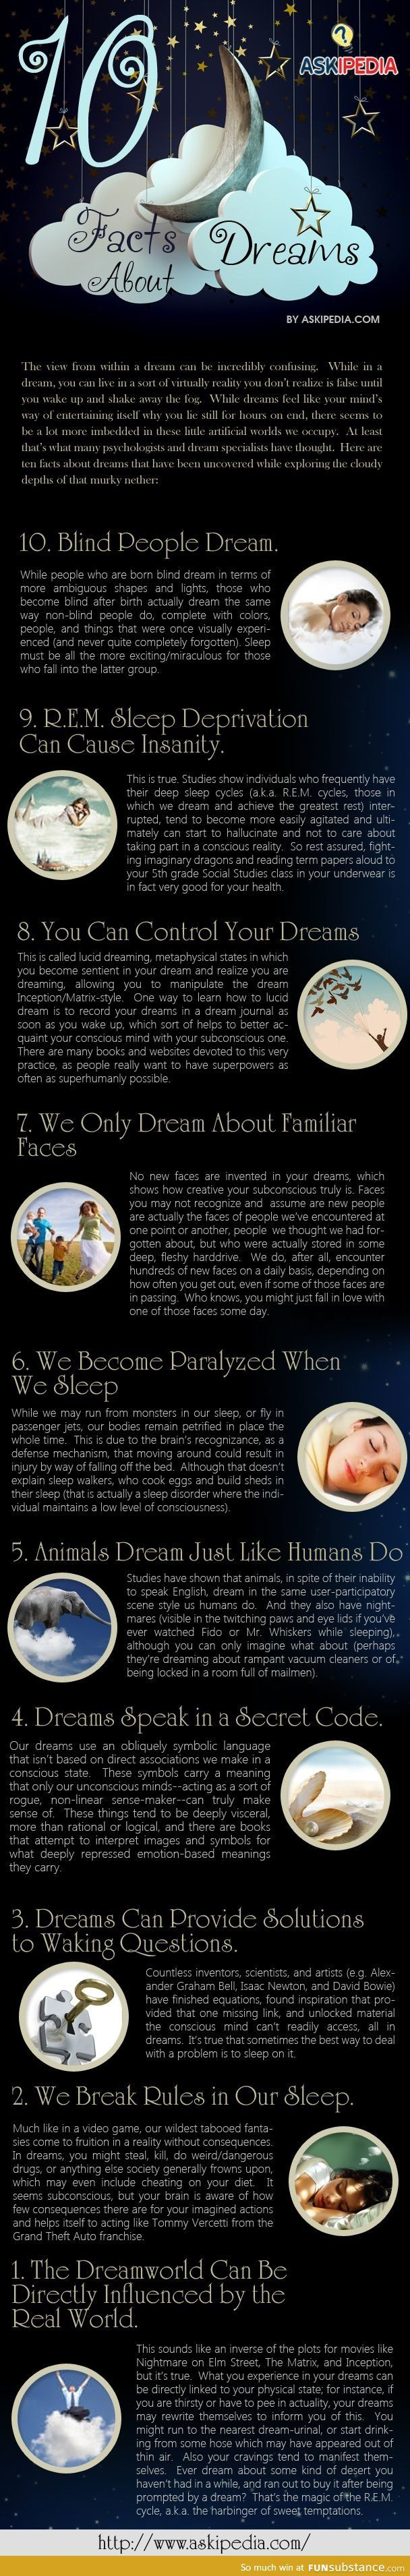 Psychological Facts about Dream